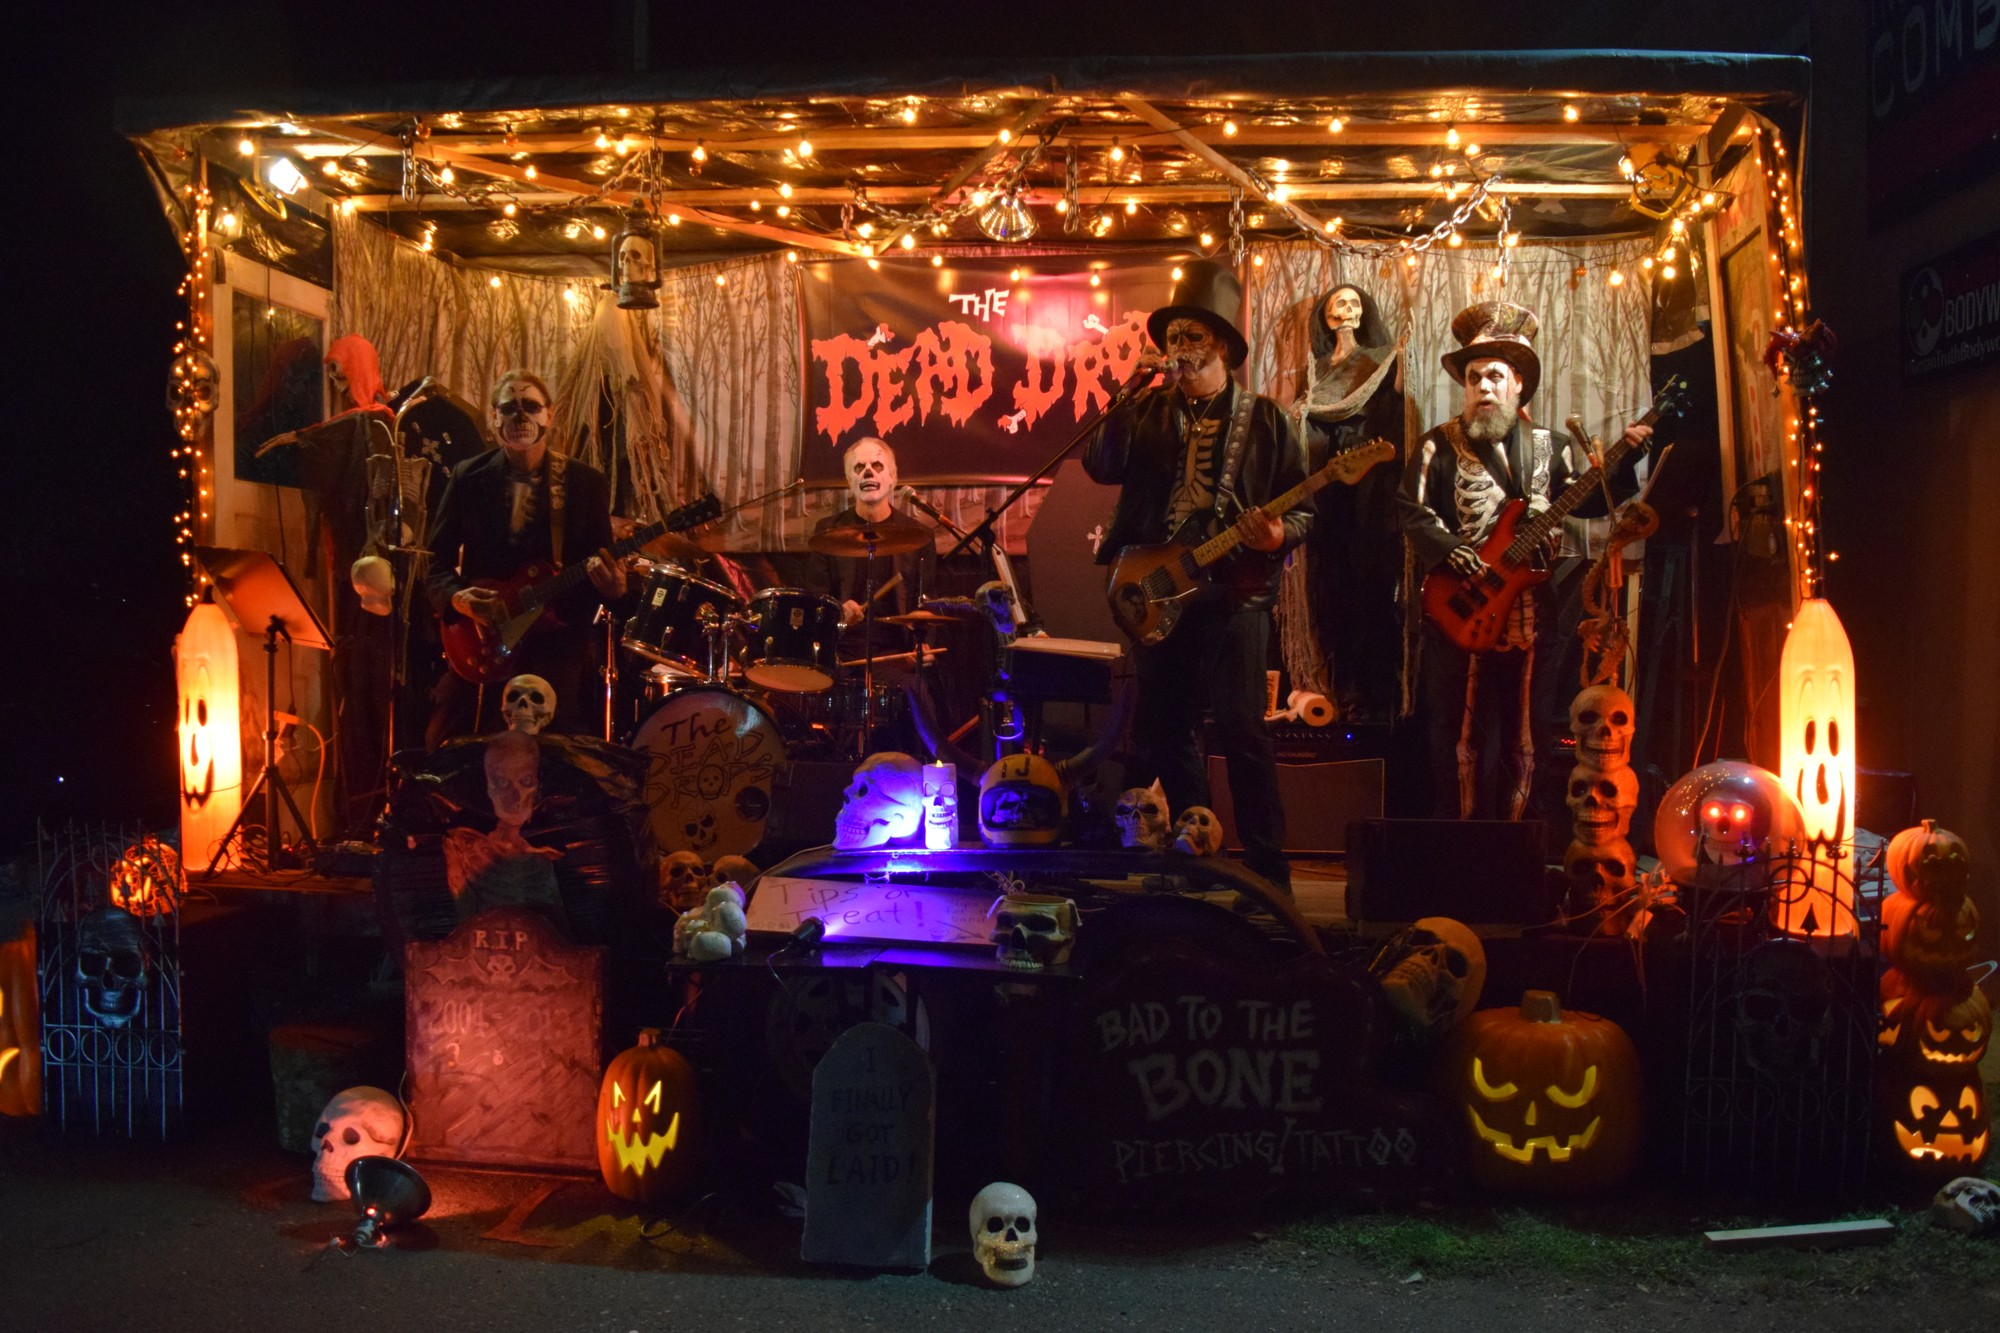 The Dead Drops live preforming for the people nervously waiting to enter the Haunted Kinetic Lab of Horrors on Oct. 28. Photo credit: Juan Herrera